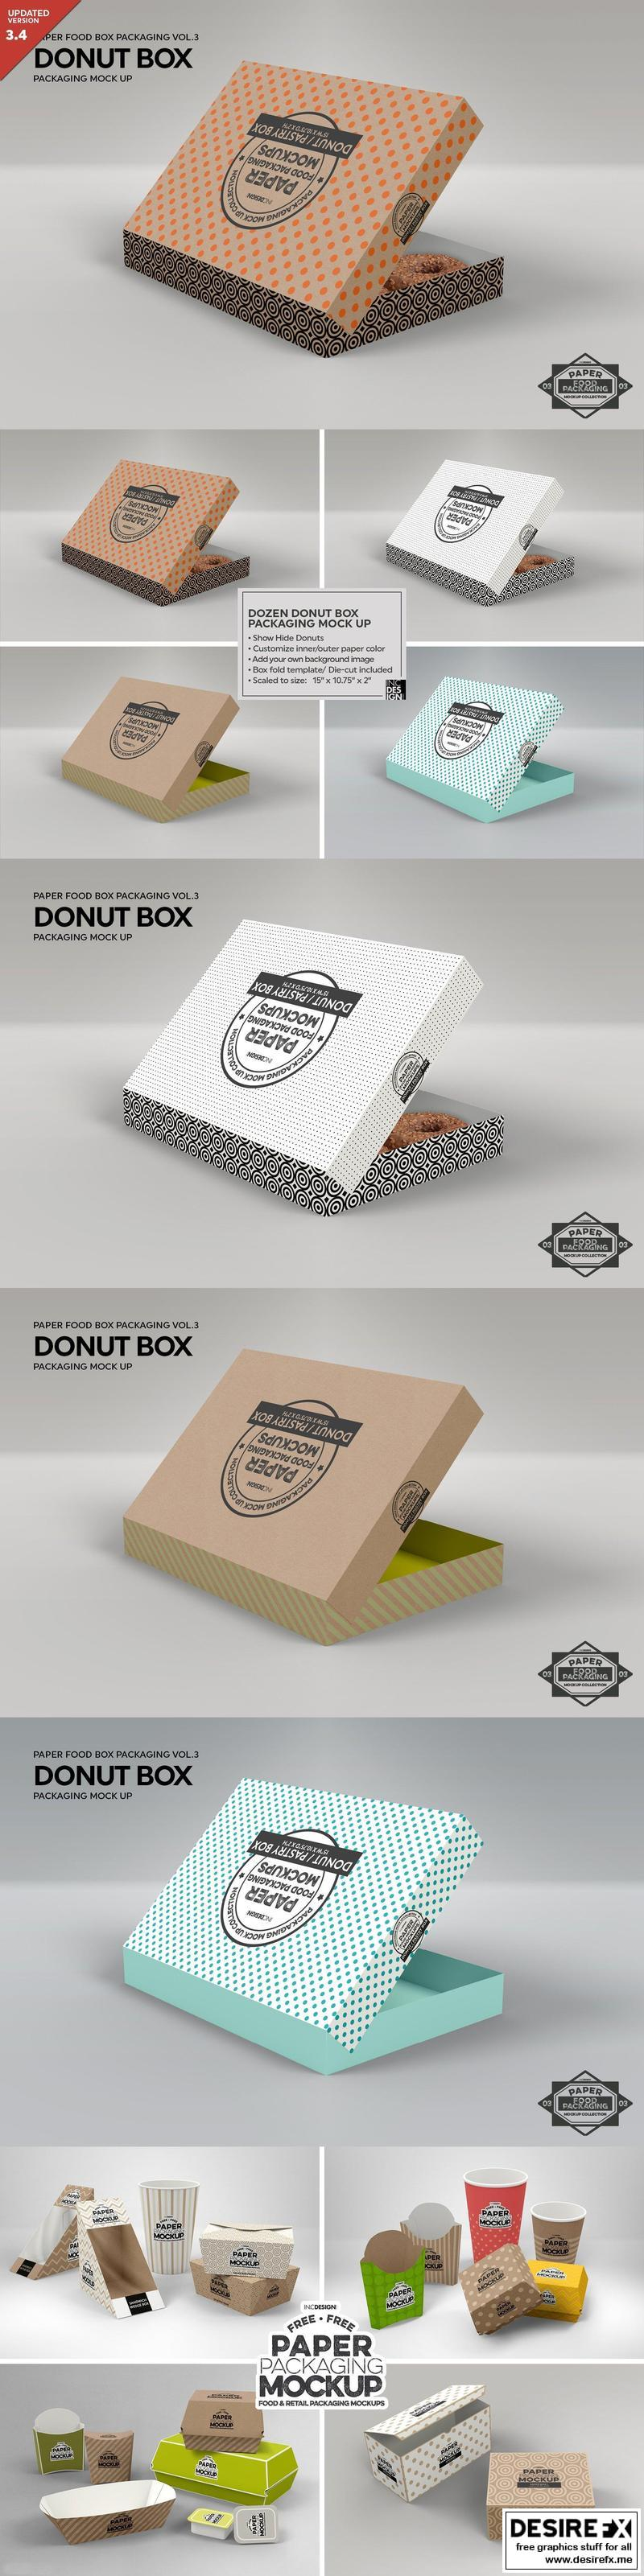 These psd mockups are just perfect to create the most interest. Desire Fx 3d Models Cm Donut Box Packaging Mockup 1211264